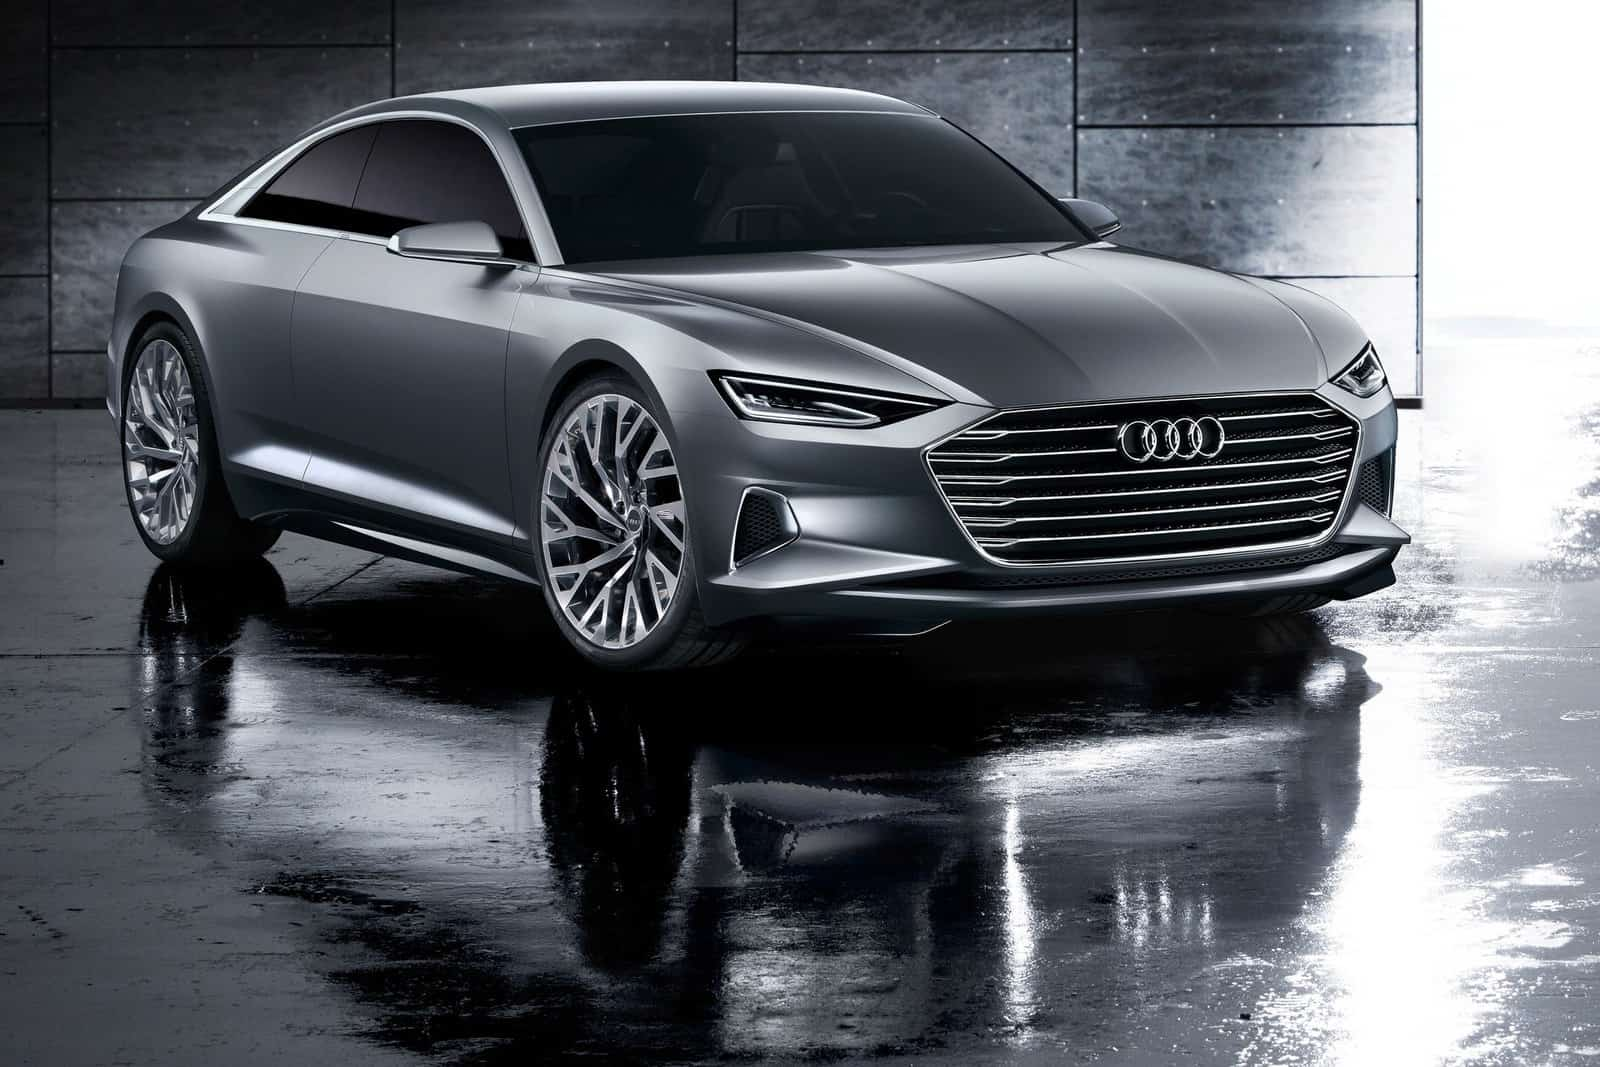 Audi-Prologue_Concept_2014_1600x1200_wallpaper_01